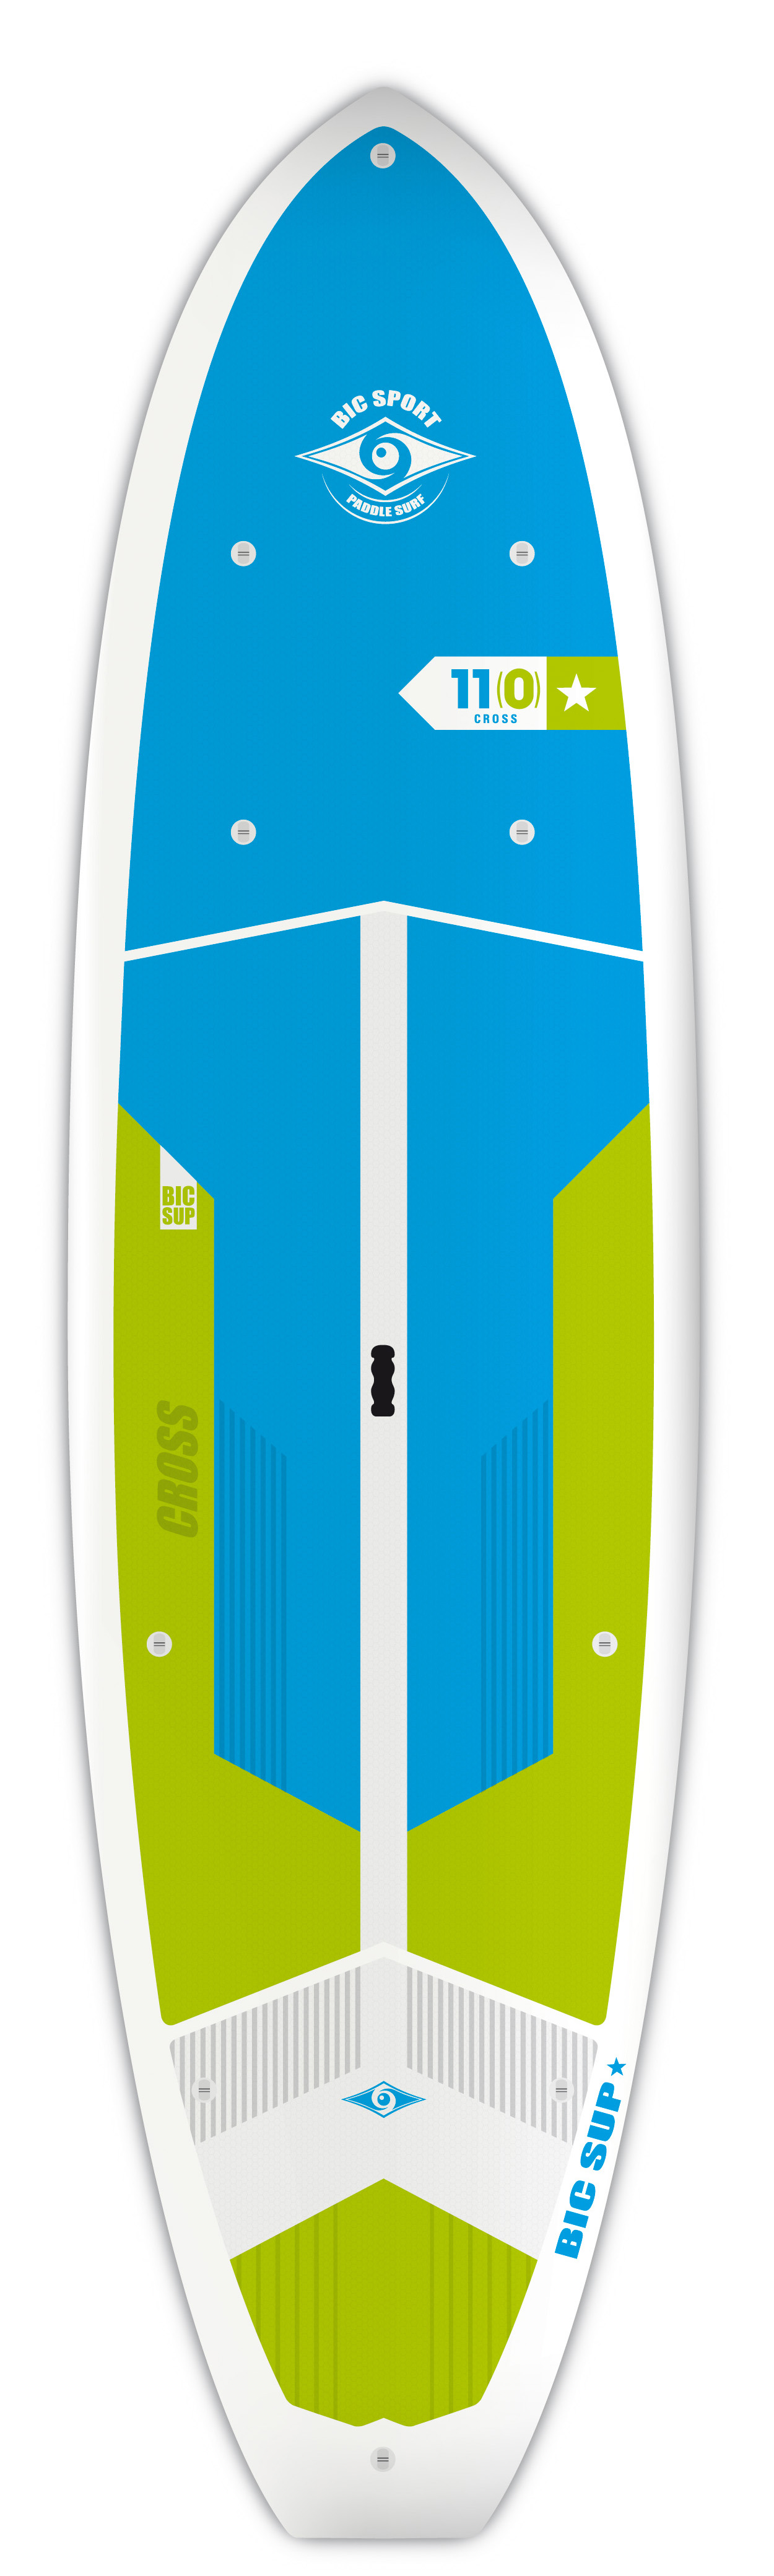 Paddleboards: ACE-TEC 11'0'' Cross Adventure by BIC SUP - Image 4506